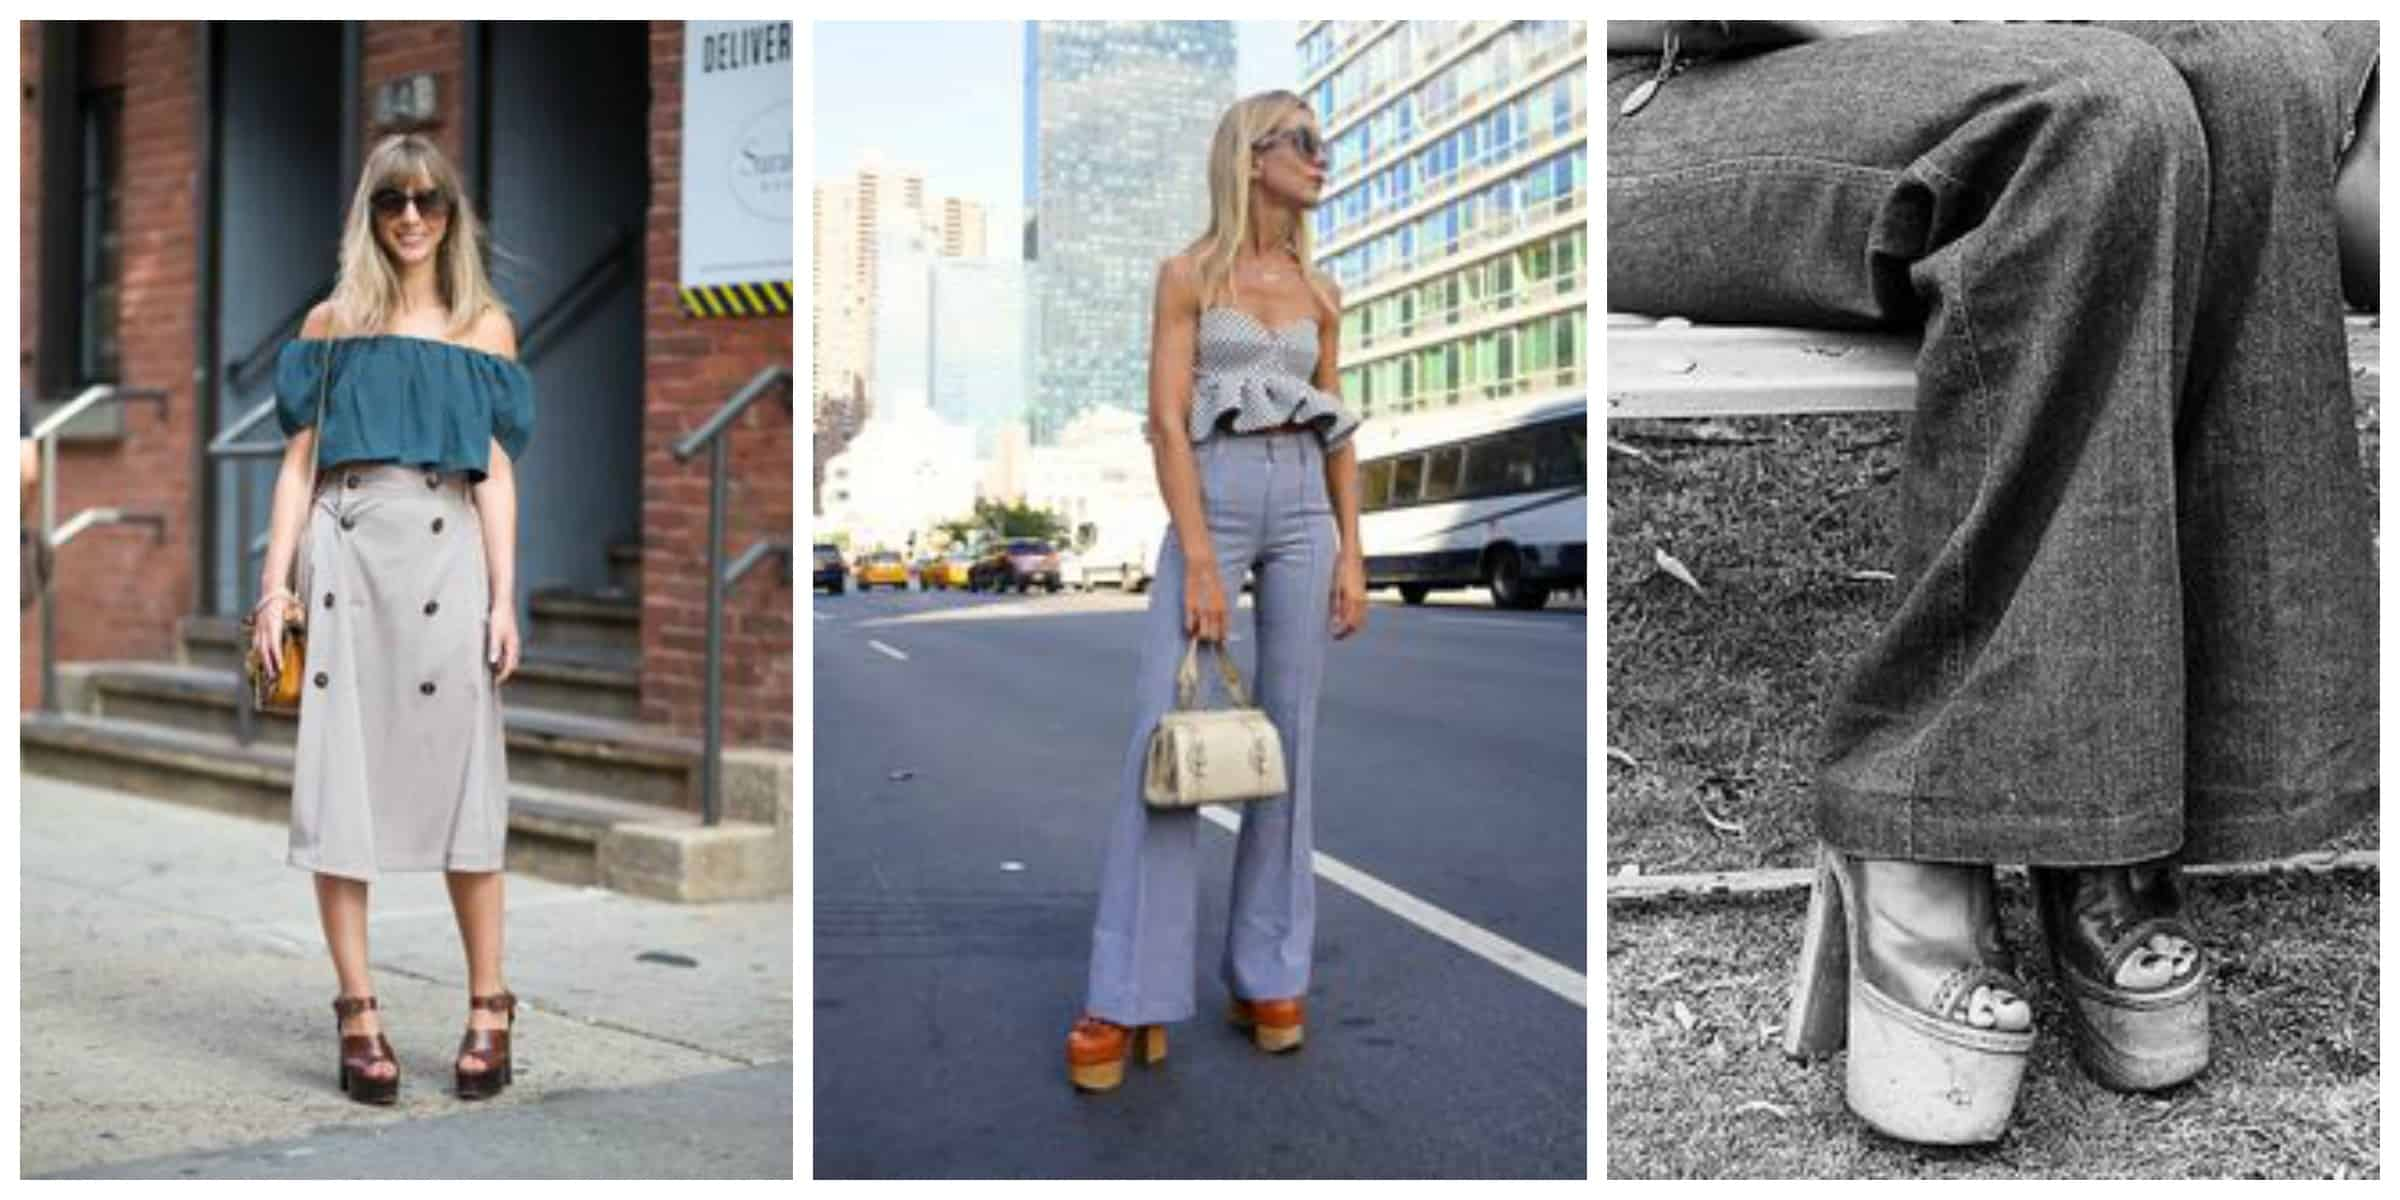 ea0c2f750484 1970s Fashion: 10 Things You Need This Spring To Get The '70s Look